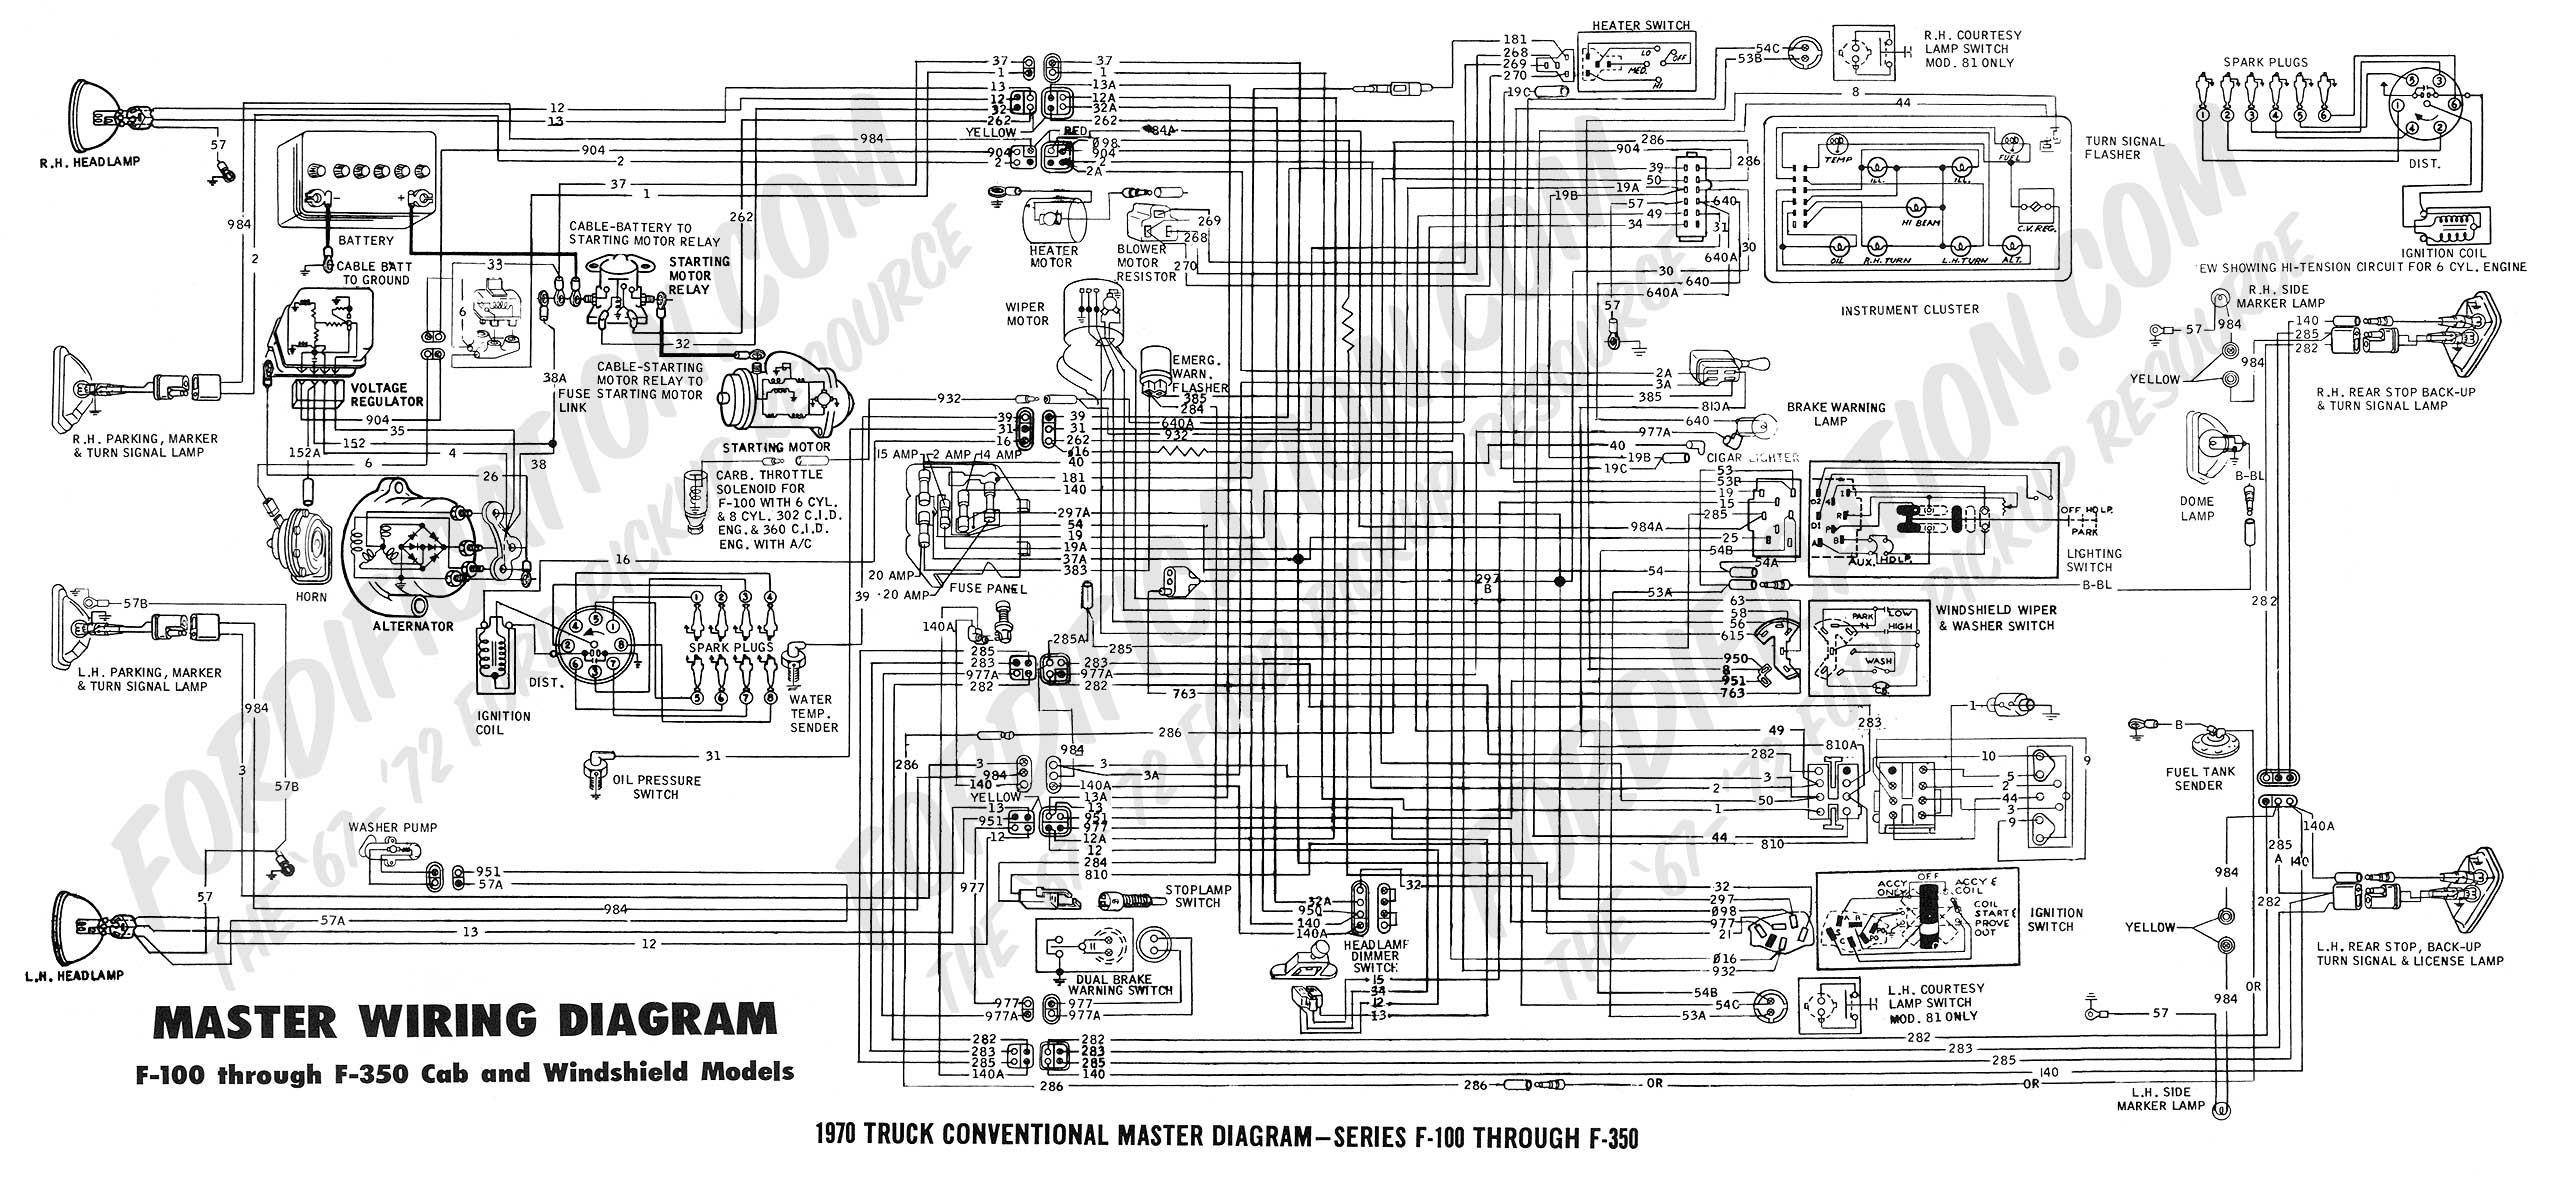 1967 F 100 Wiring Harness - wiring diagrams schematics